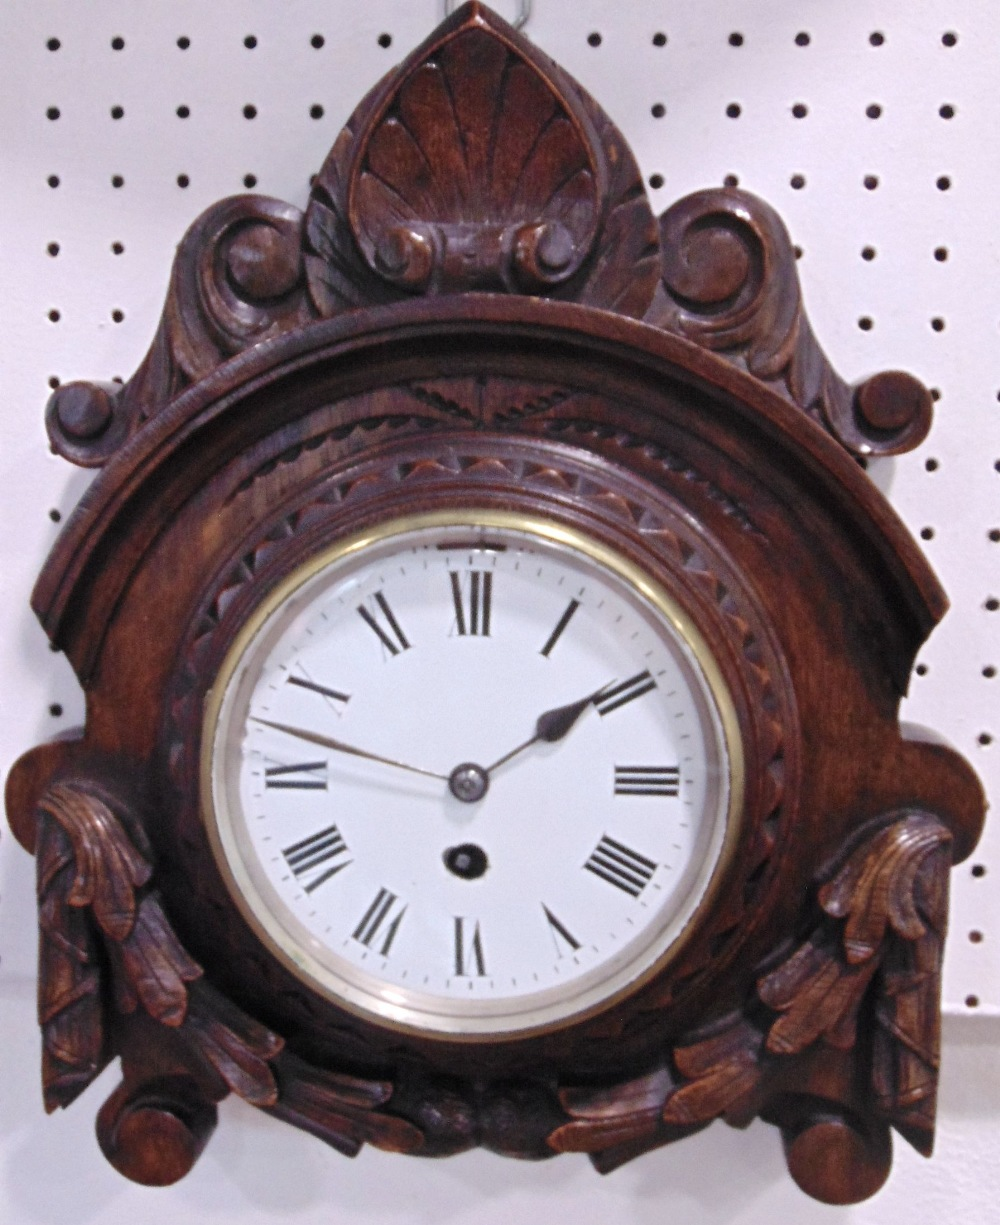 Lot 561 - Oak cased 11.5 inch wall clock, with Arabic numerals and polychrome crest for George IV; together